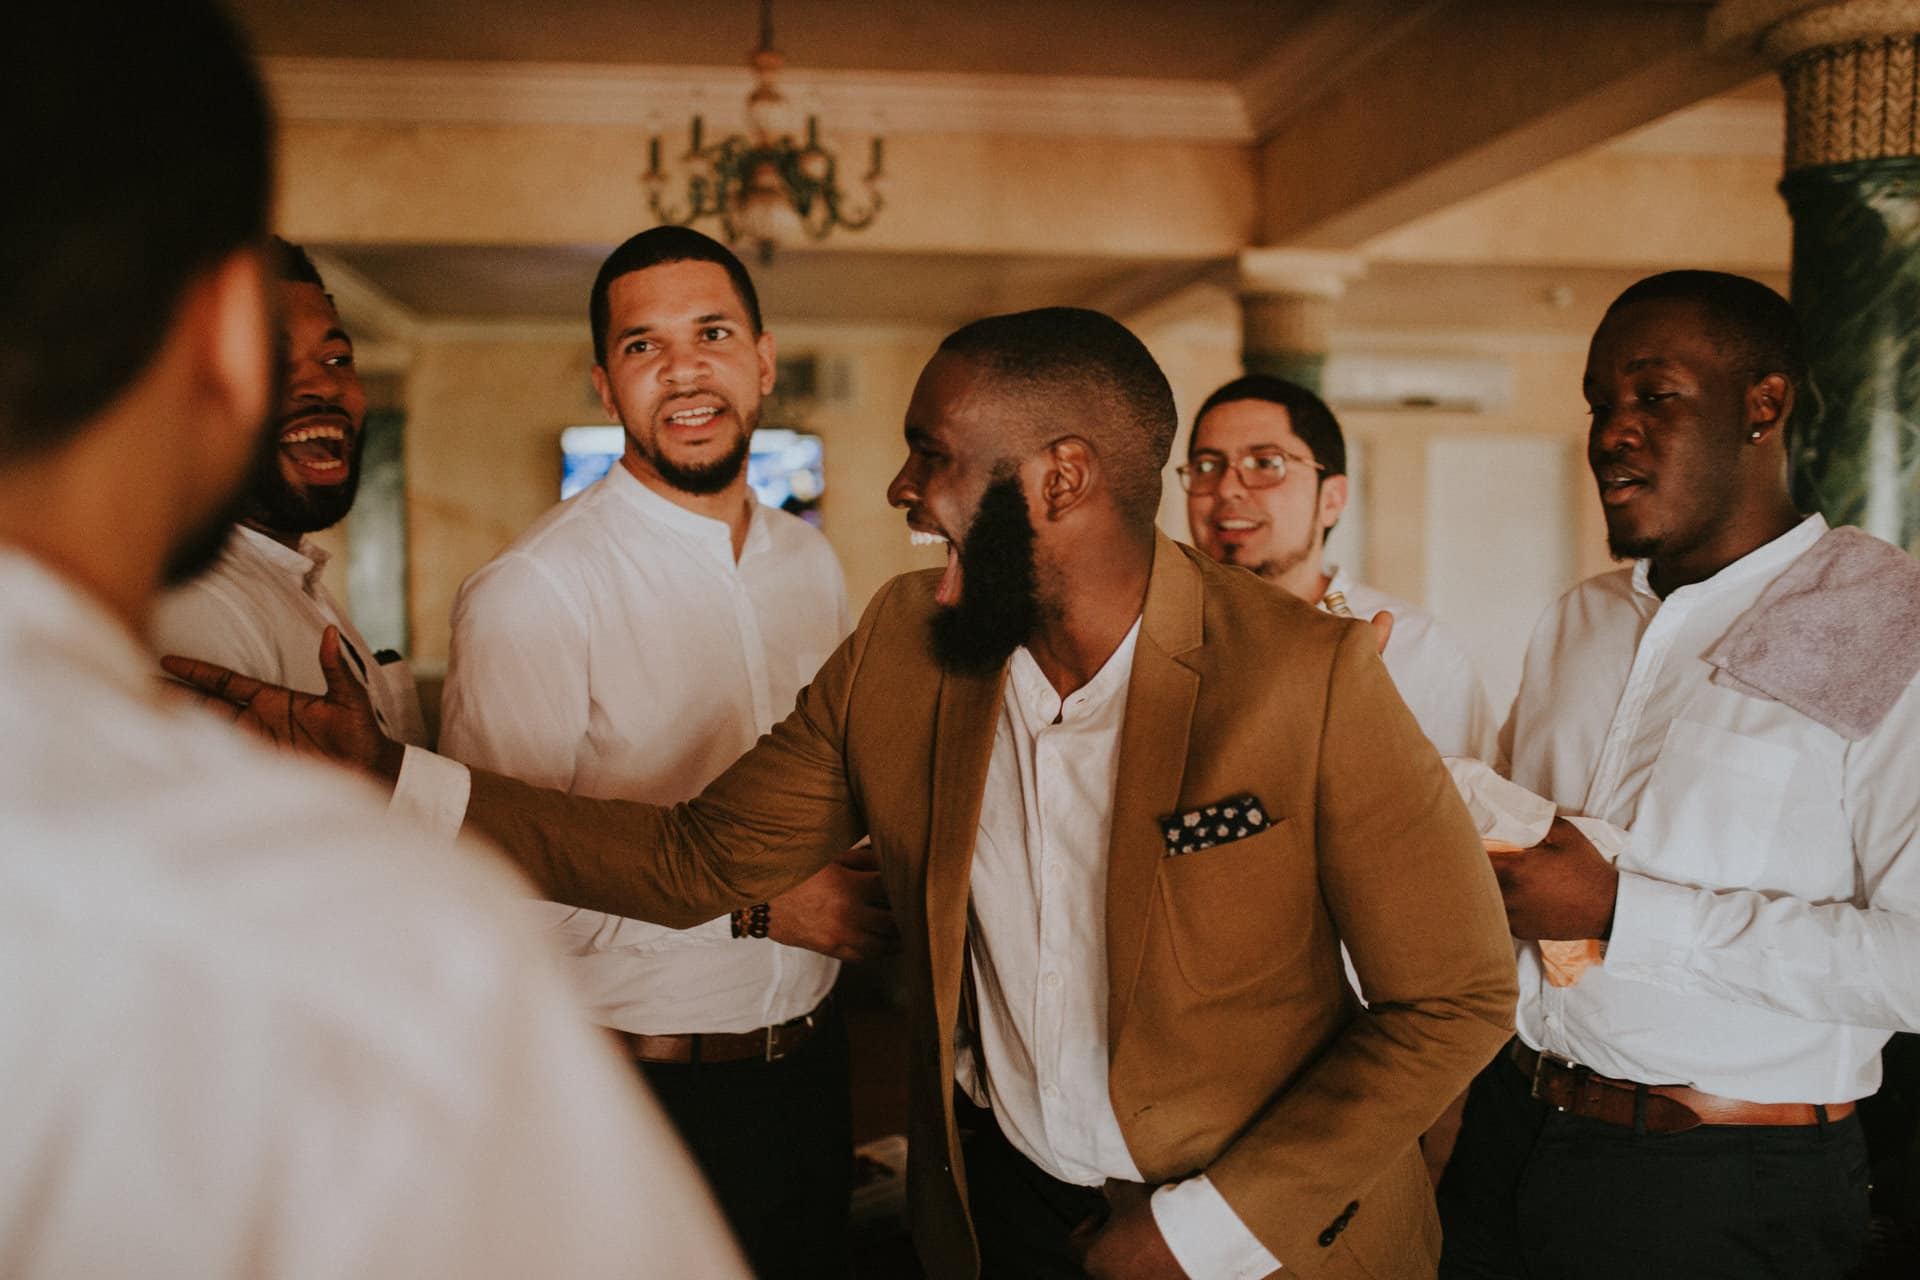 The groom is laughing with his groomsmen.